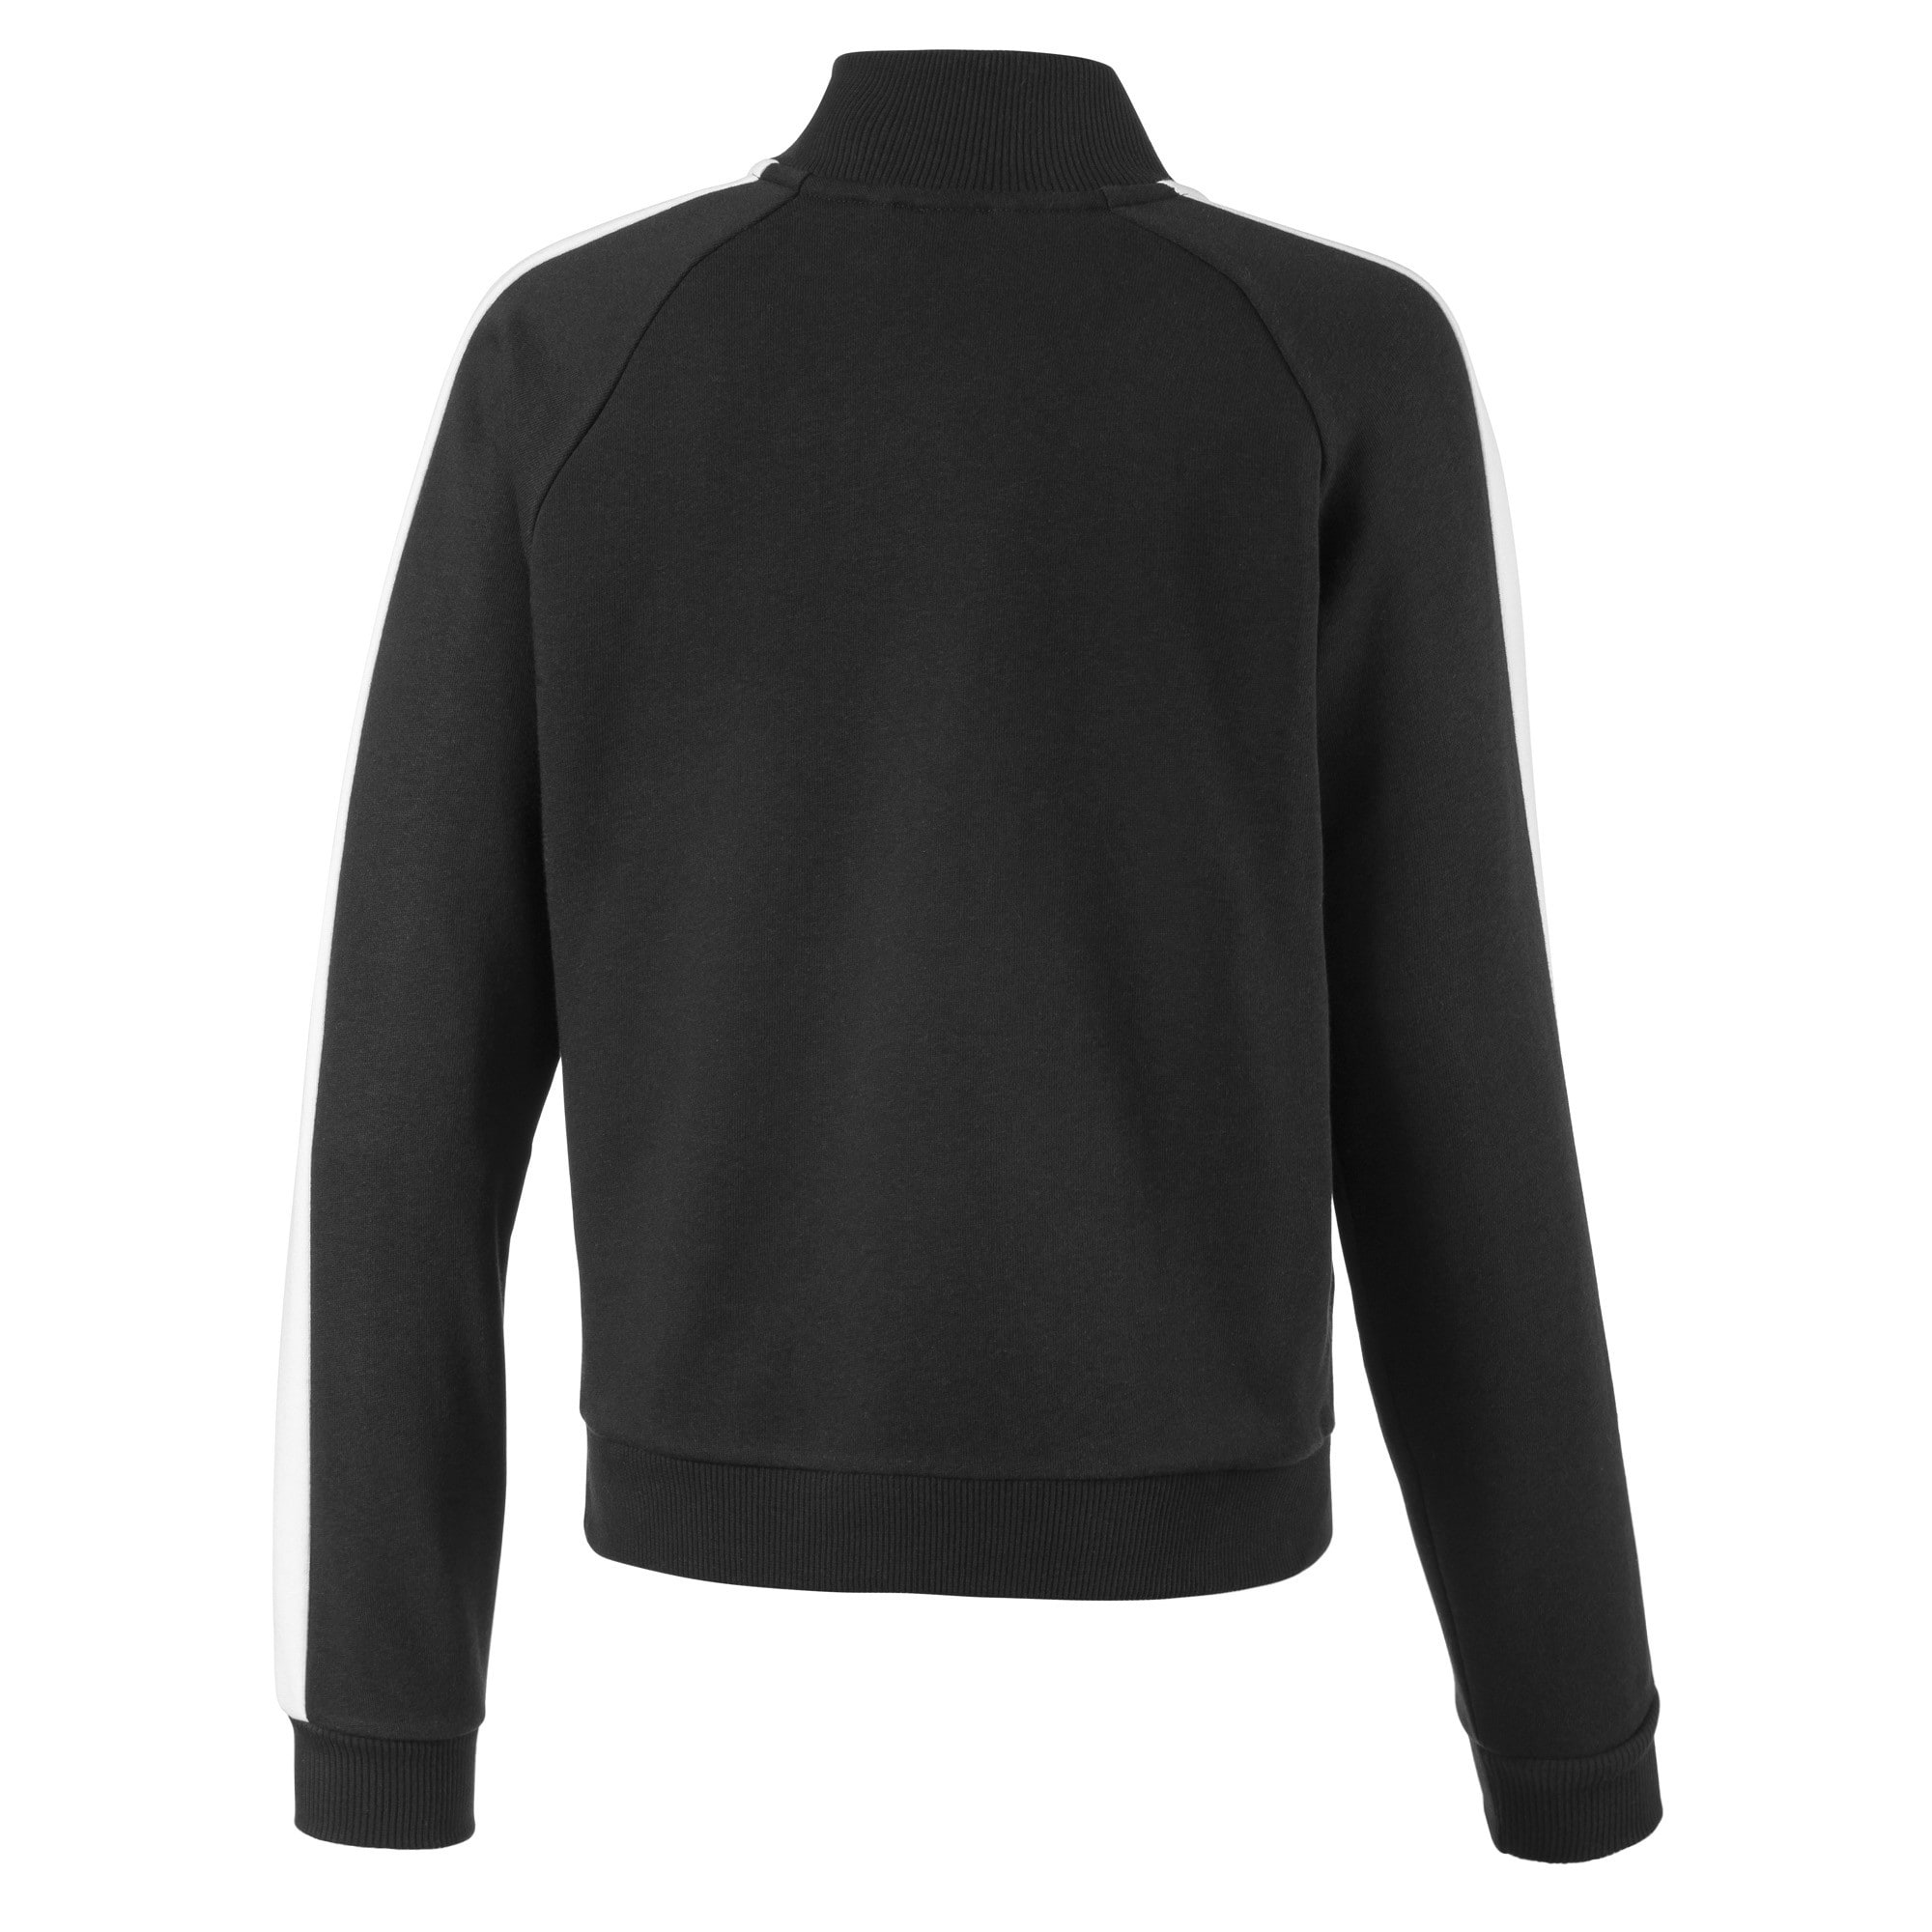 Thumbnail 2 of Classics T7 Girls' Sweat Jacket, Puma Black, medium